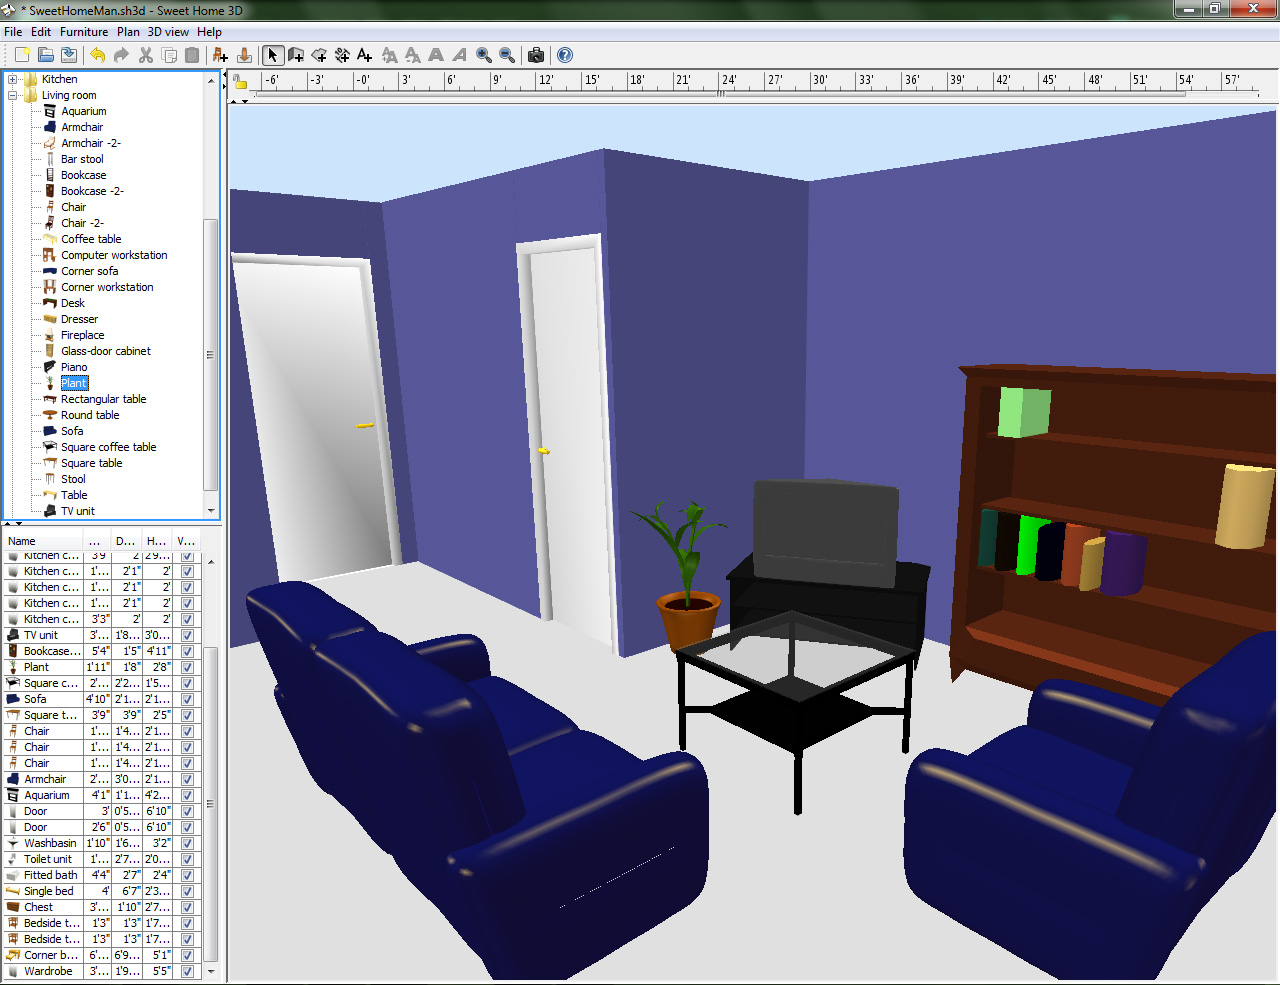 House interior design software Free home interior design software